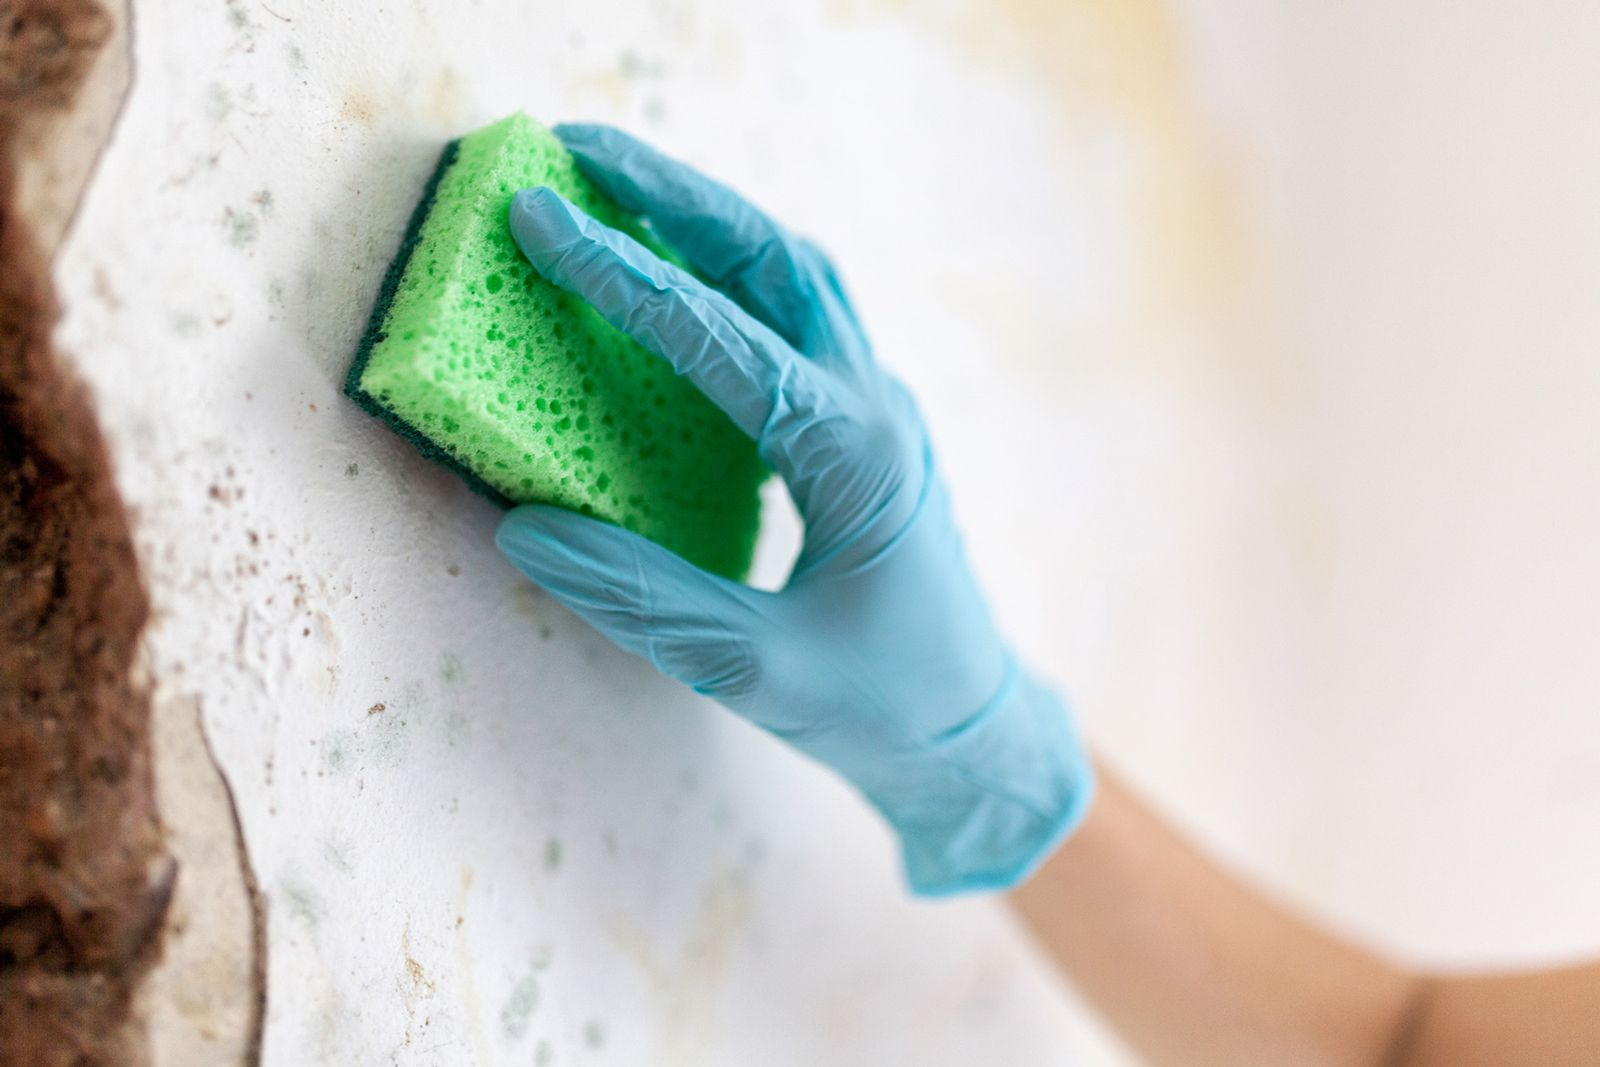 Mold damages the wall of a fort lauderdale home due to water damage. Hire a Fort Lauderdale home insurance attorney if you find mold in your home.